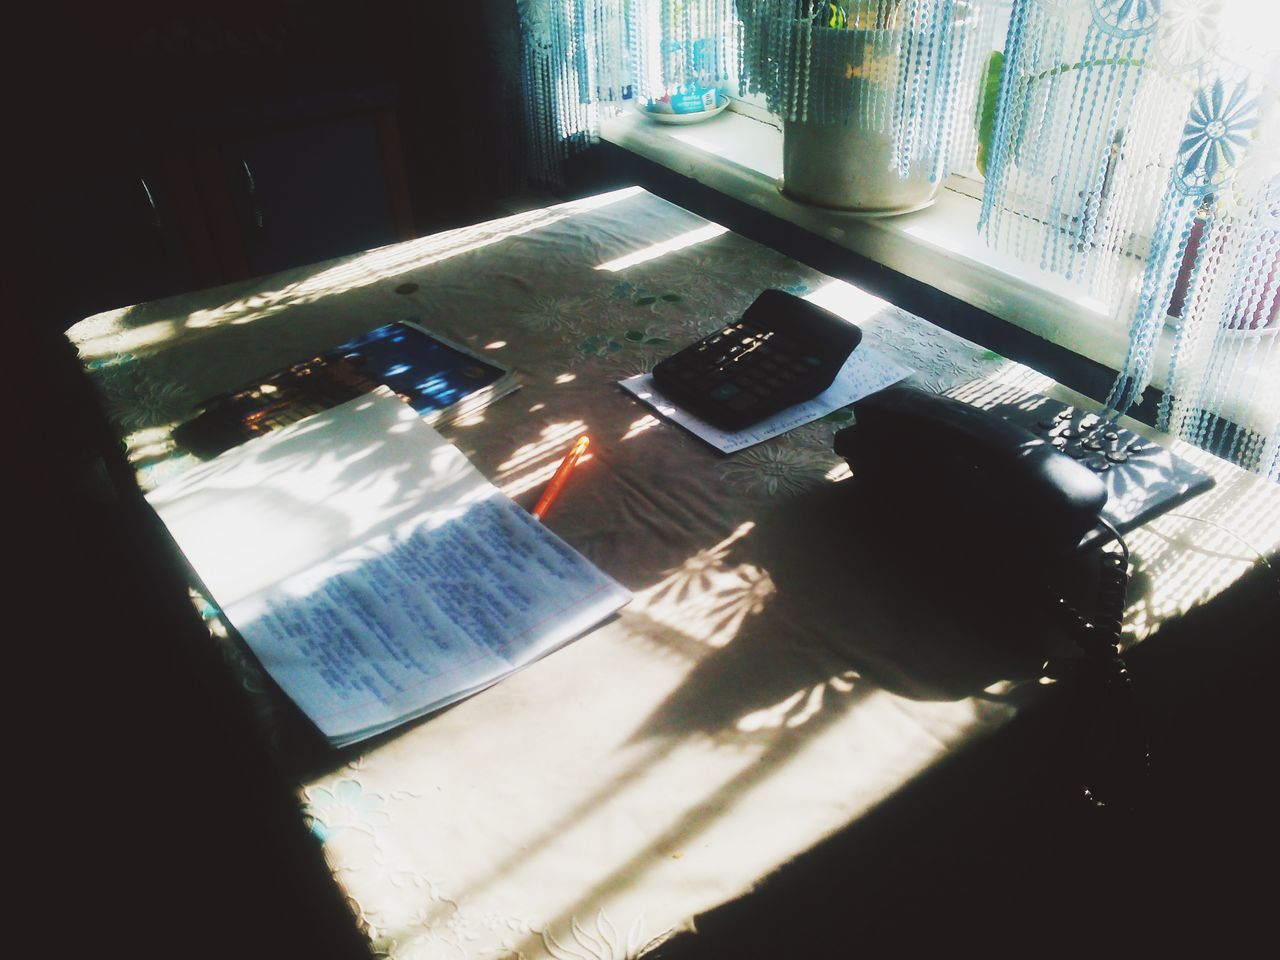 shadow, sunlight, indoors, high angle view, window, day, table, desk, home interior, no people, keyboard, close-up